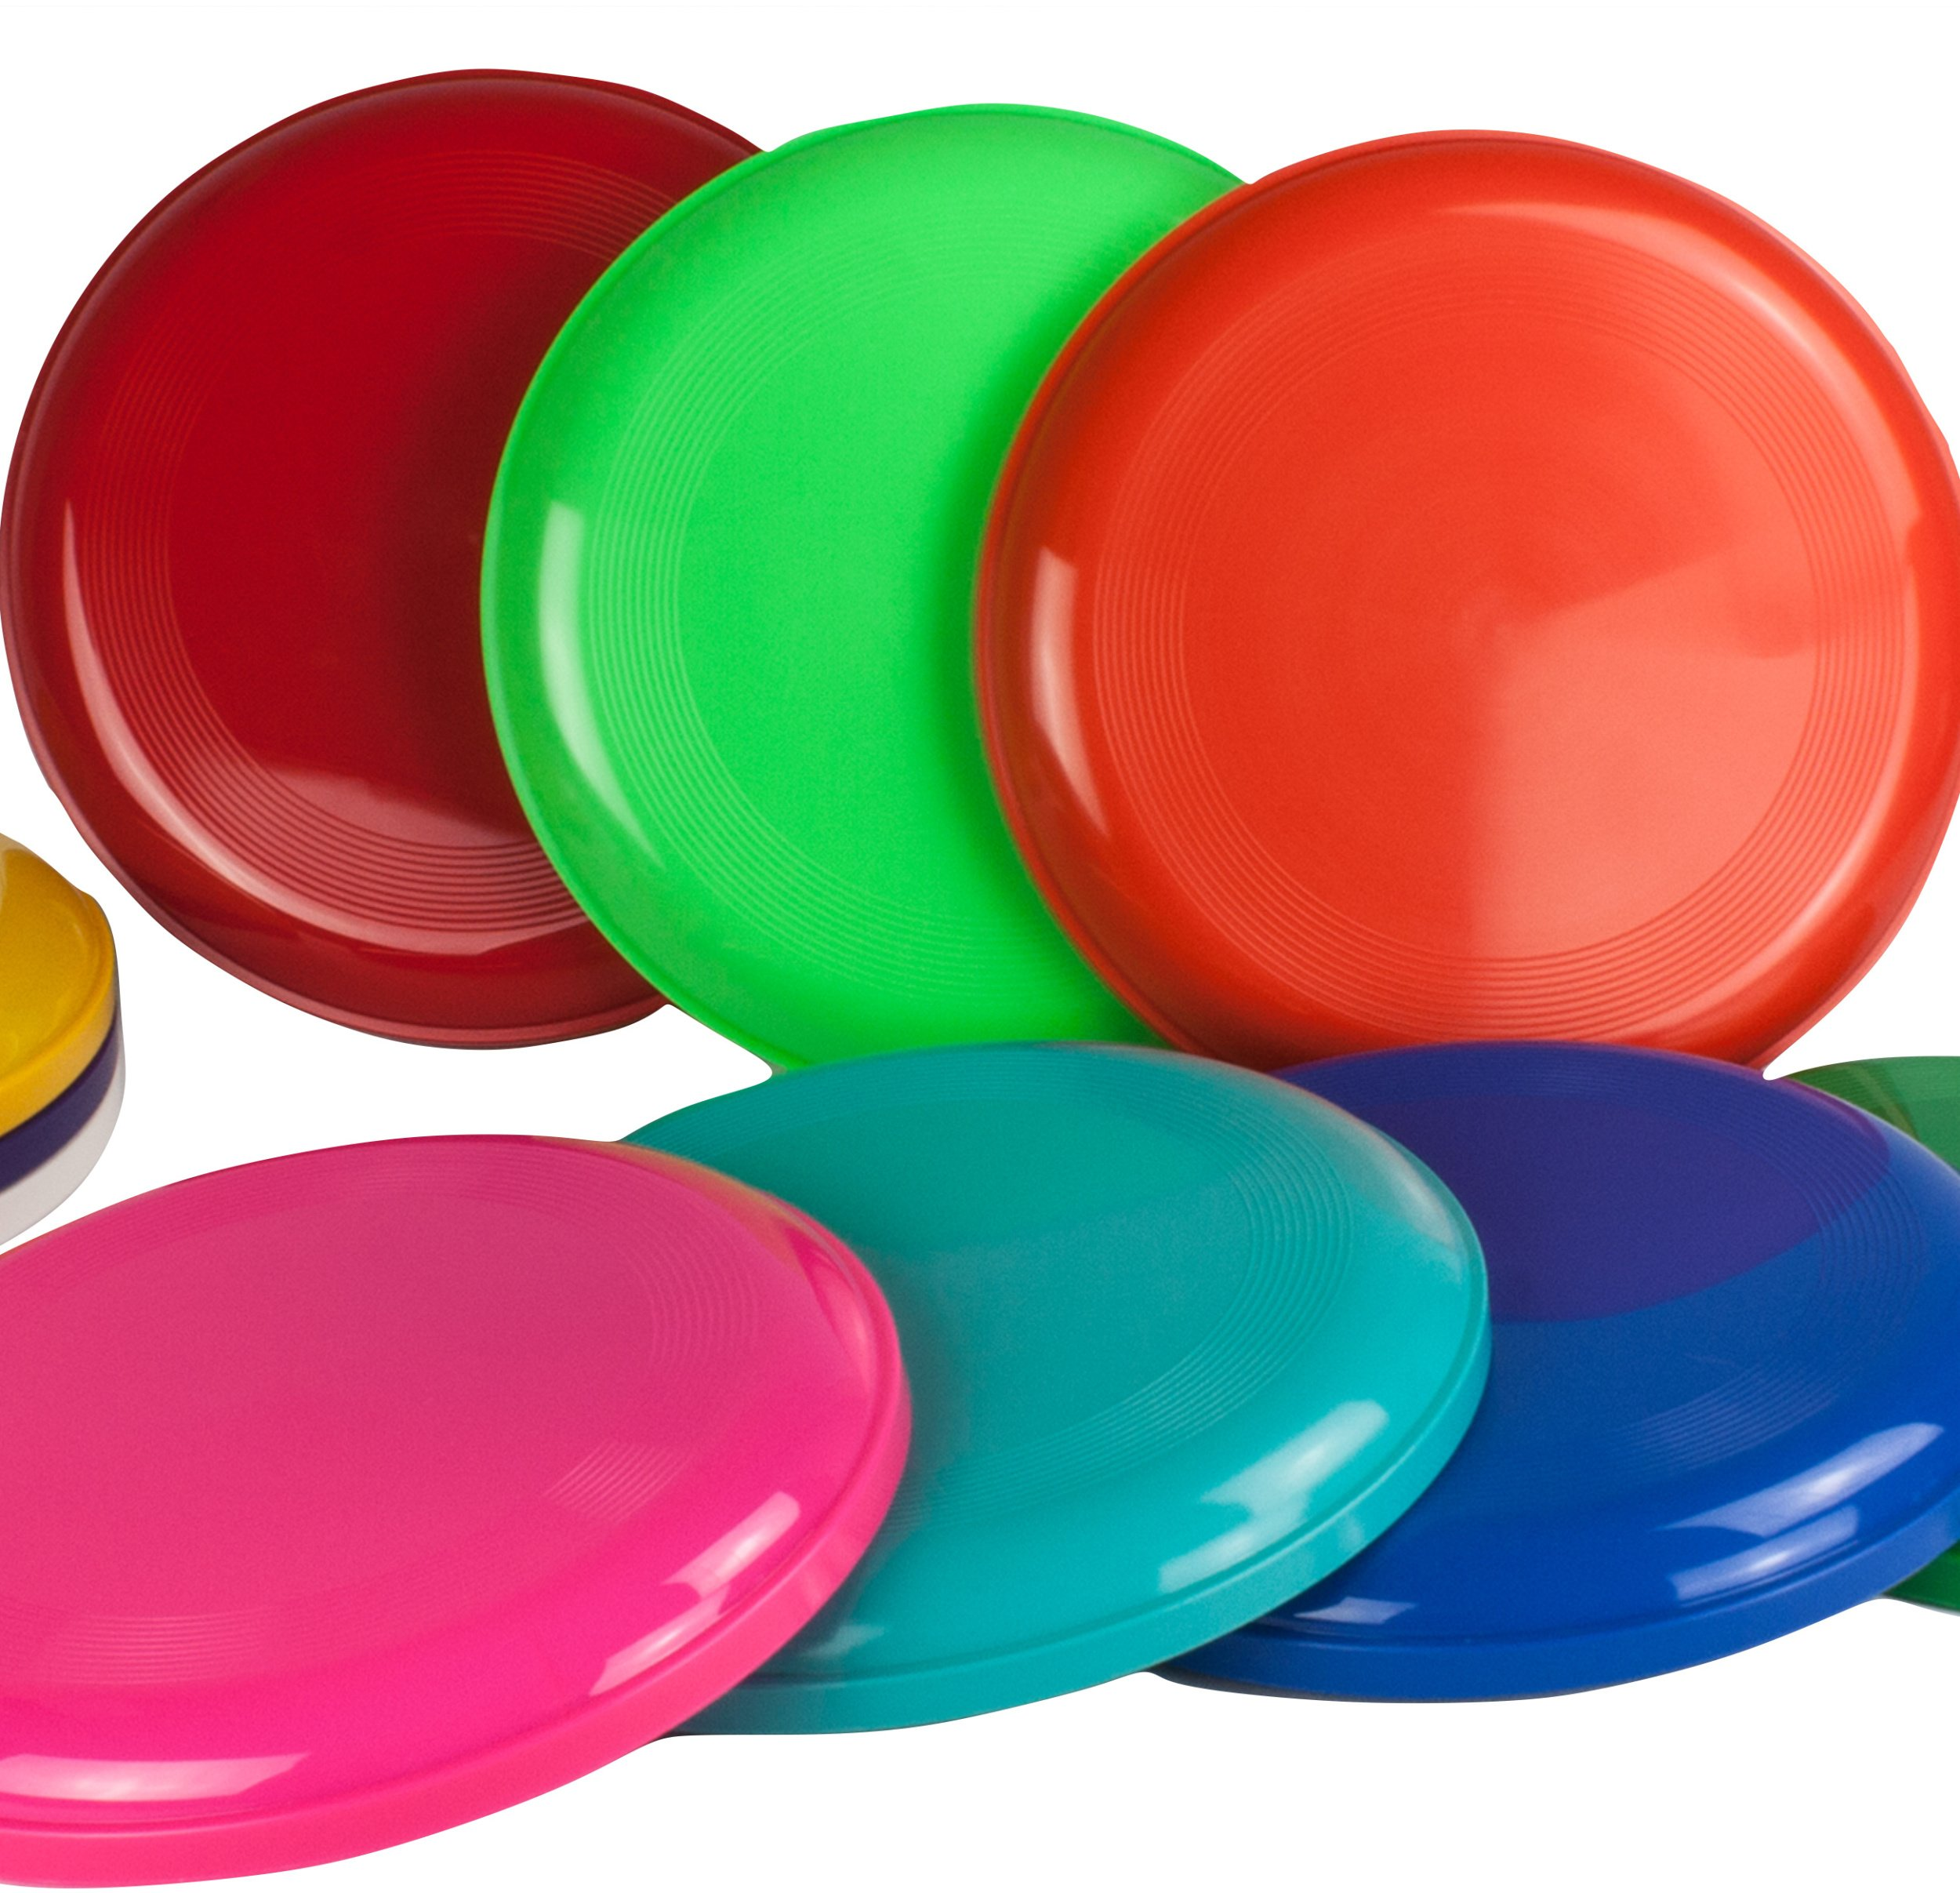 10 Frisbee, Flying Disc in 10 various colors, Frisbees colourful mixed and sold by SchwabMarken by SchwabMarken